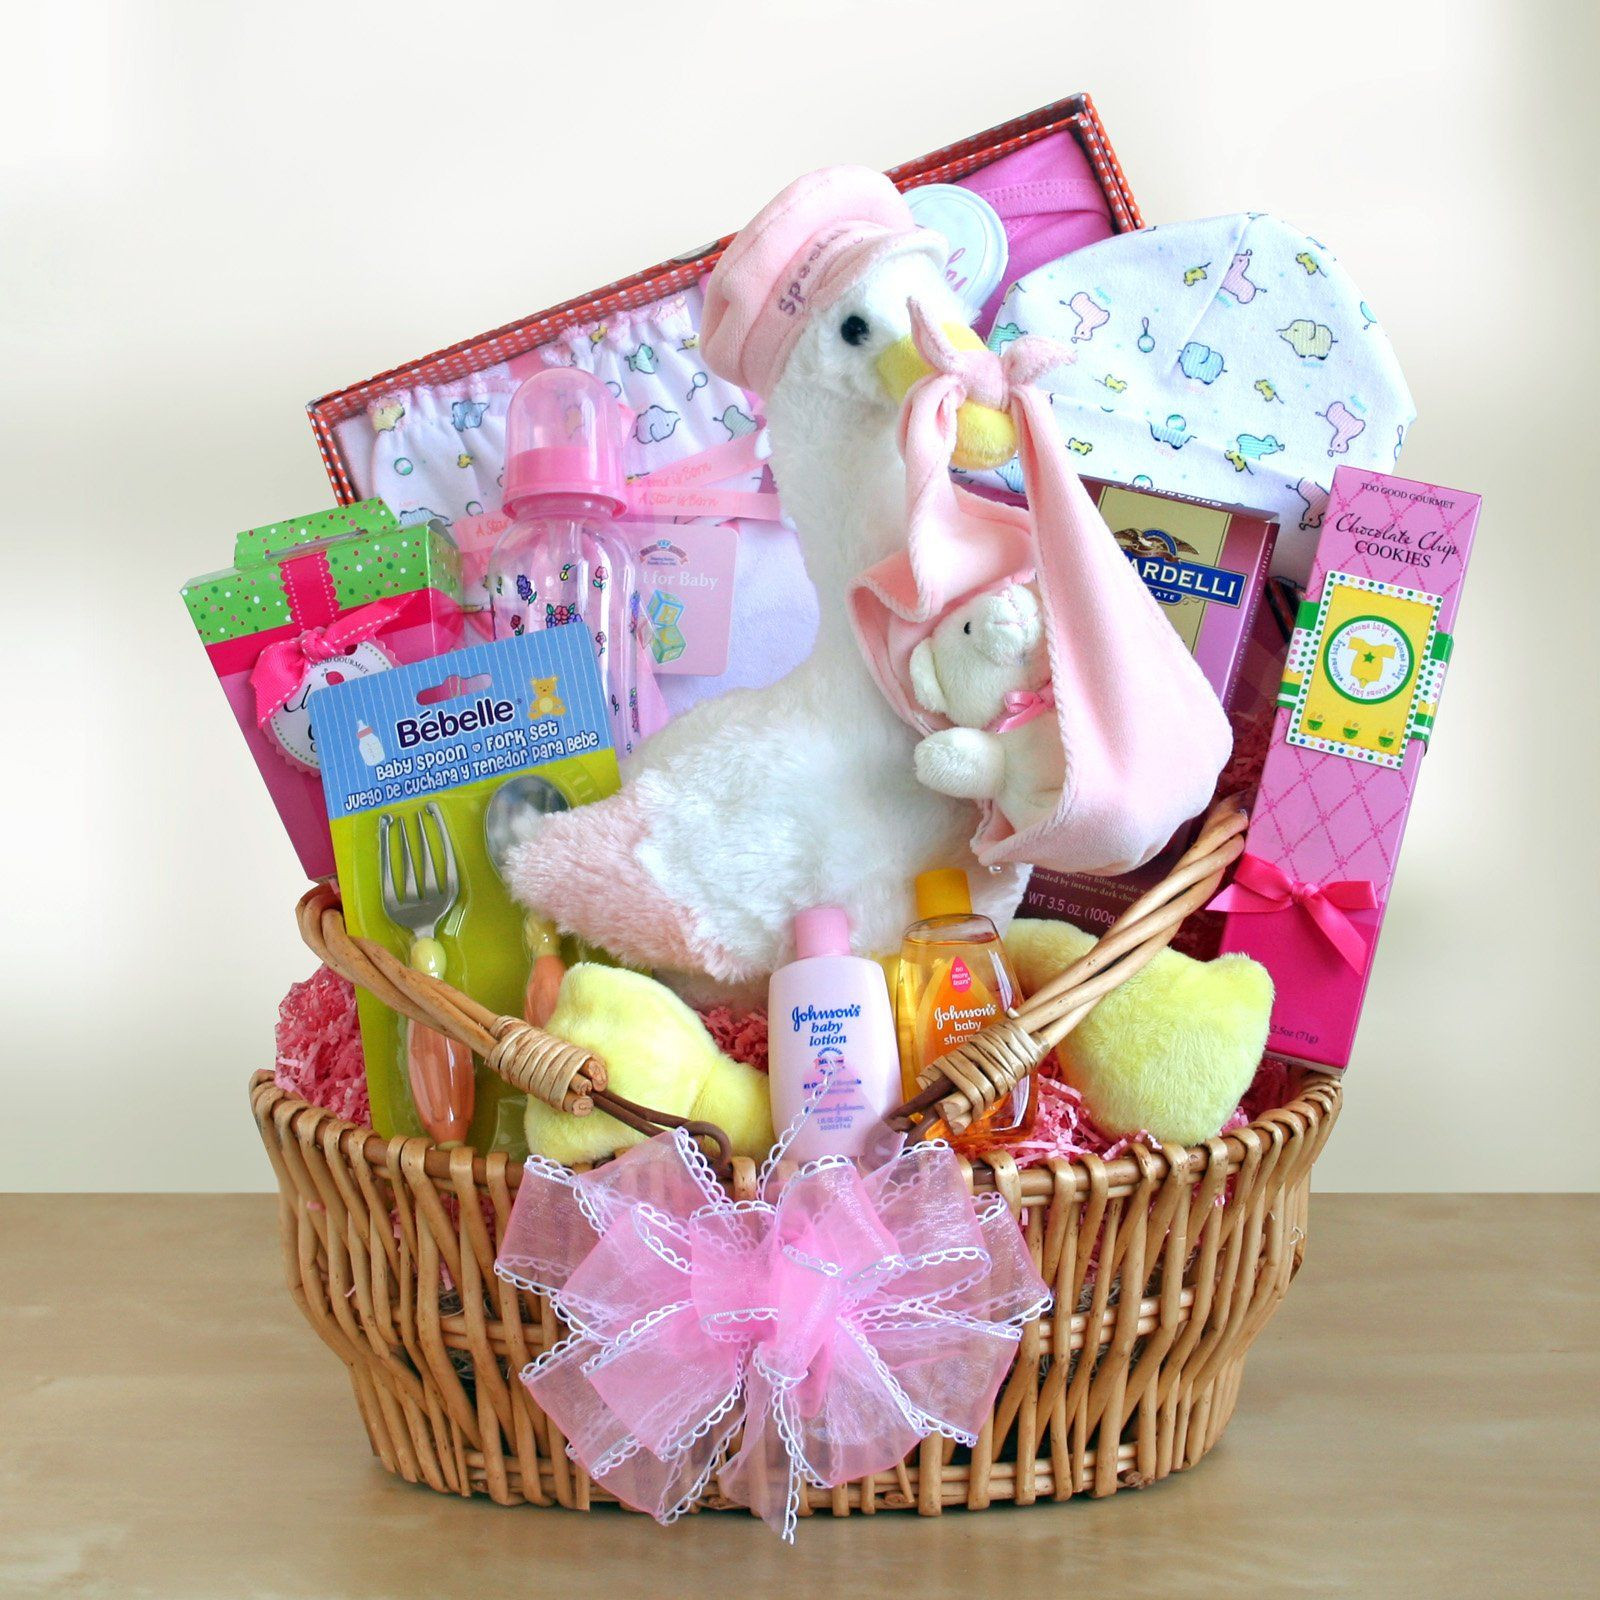 Best ideas about New Baby Girl Gift Ideas . Save or Pin Have to have it Special Stork Delivery Baby Girl Gift Now.